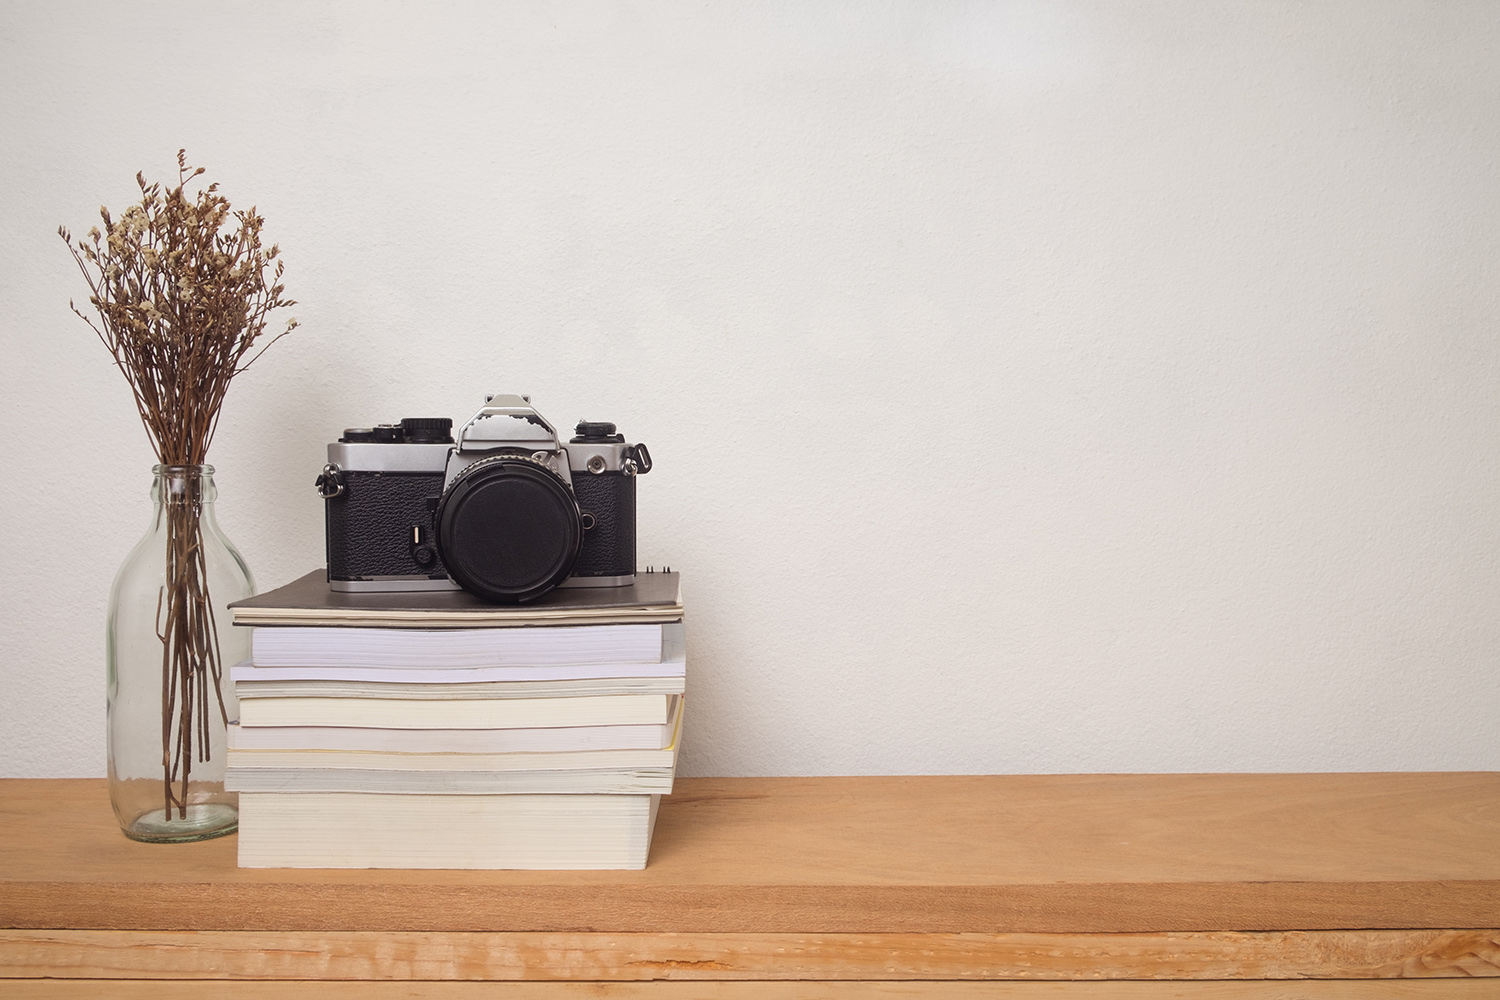 camera film photography books desk creative block